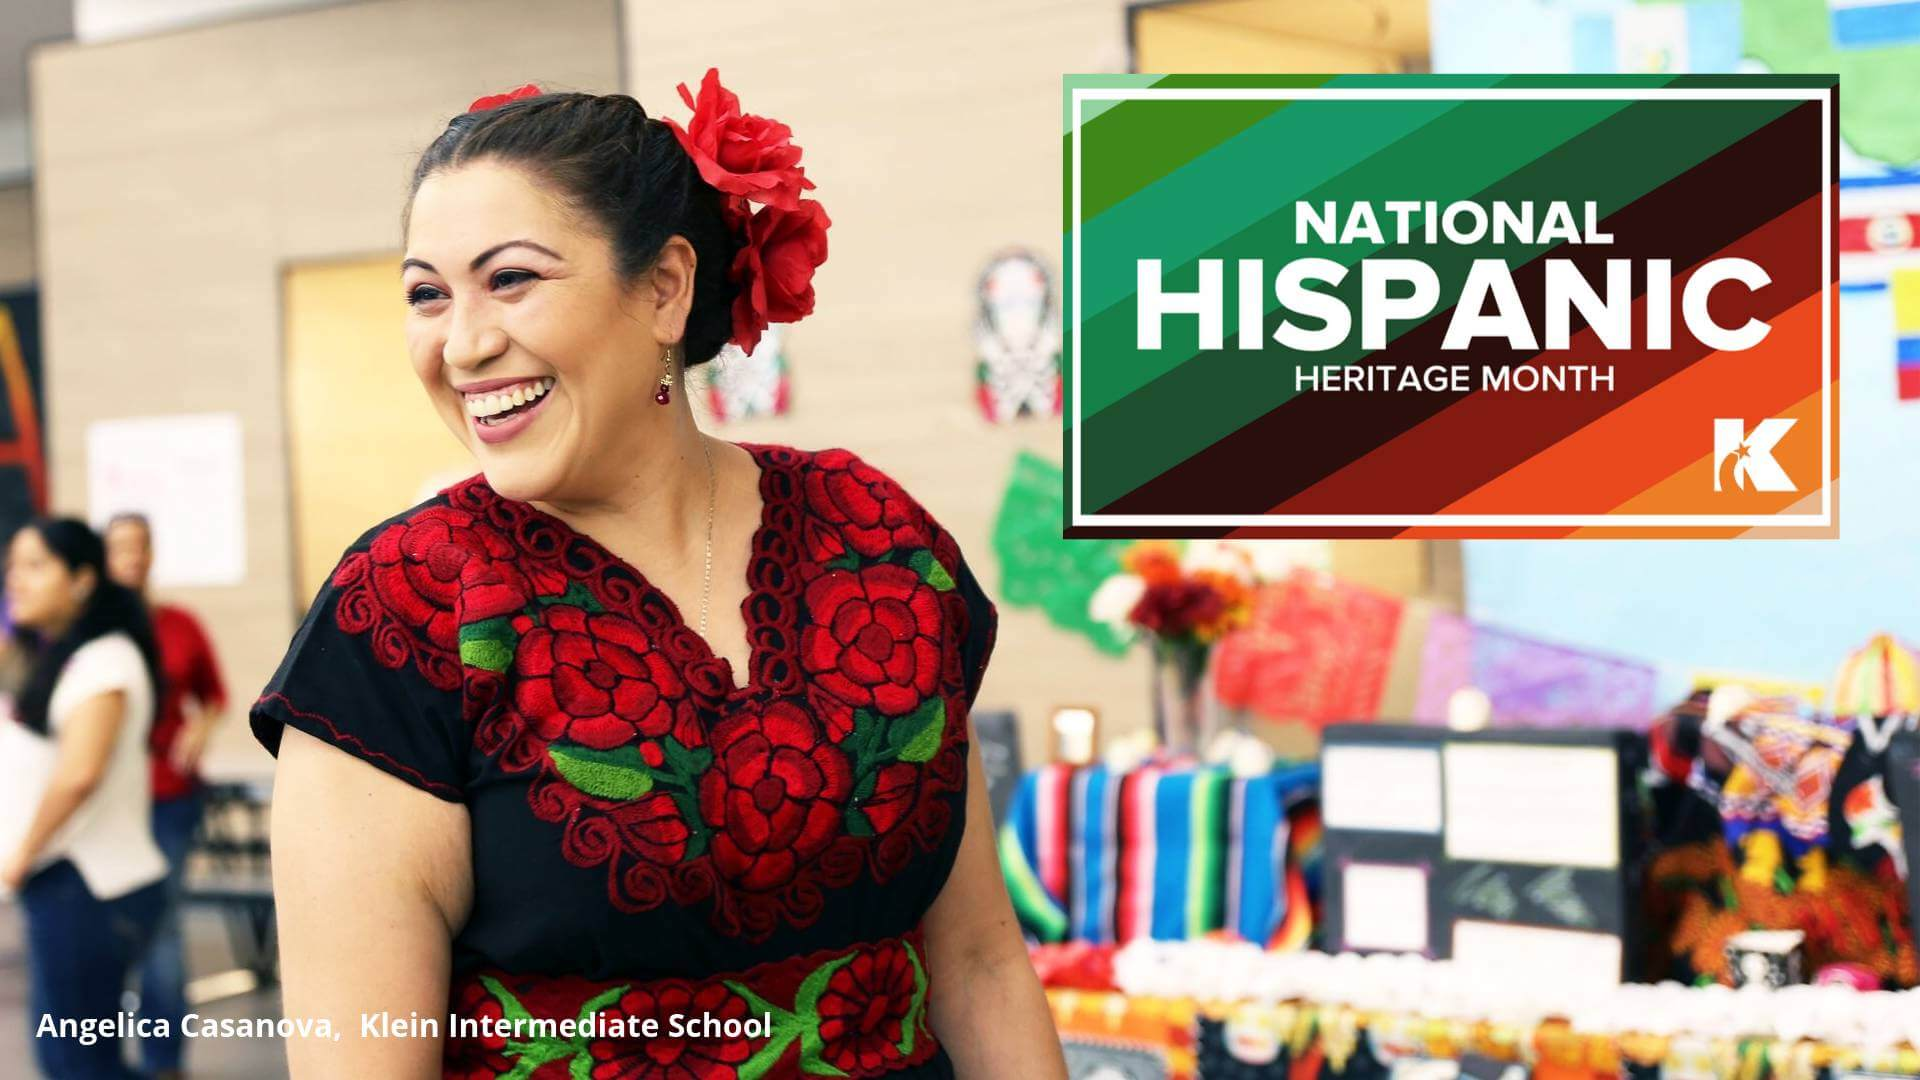 Hispanic Heritage – More Than Just a Month